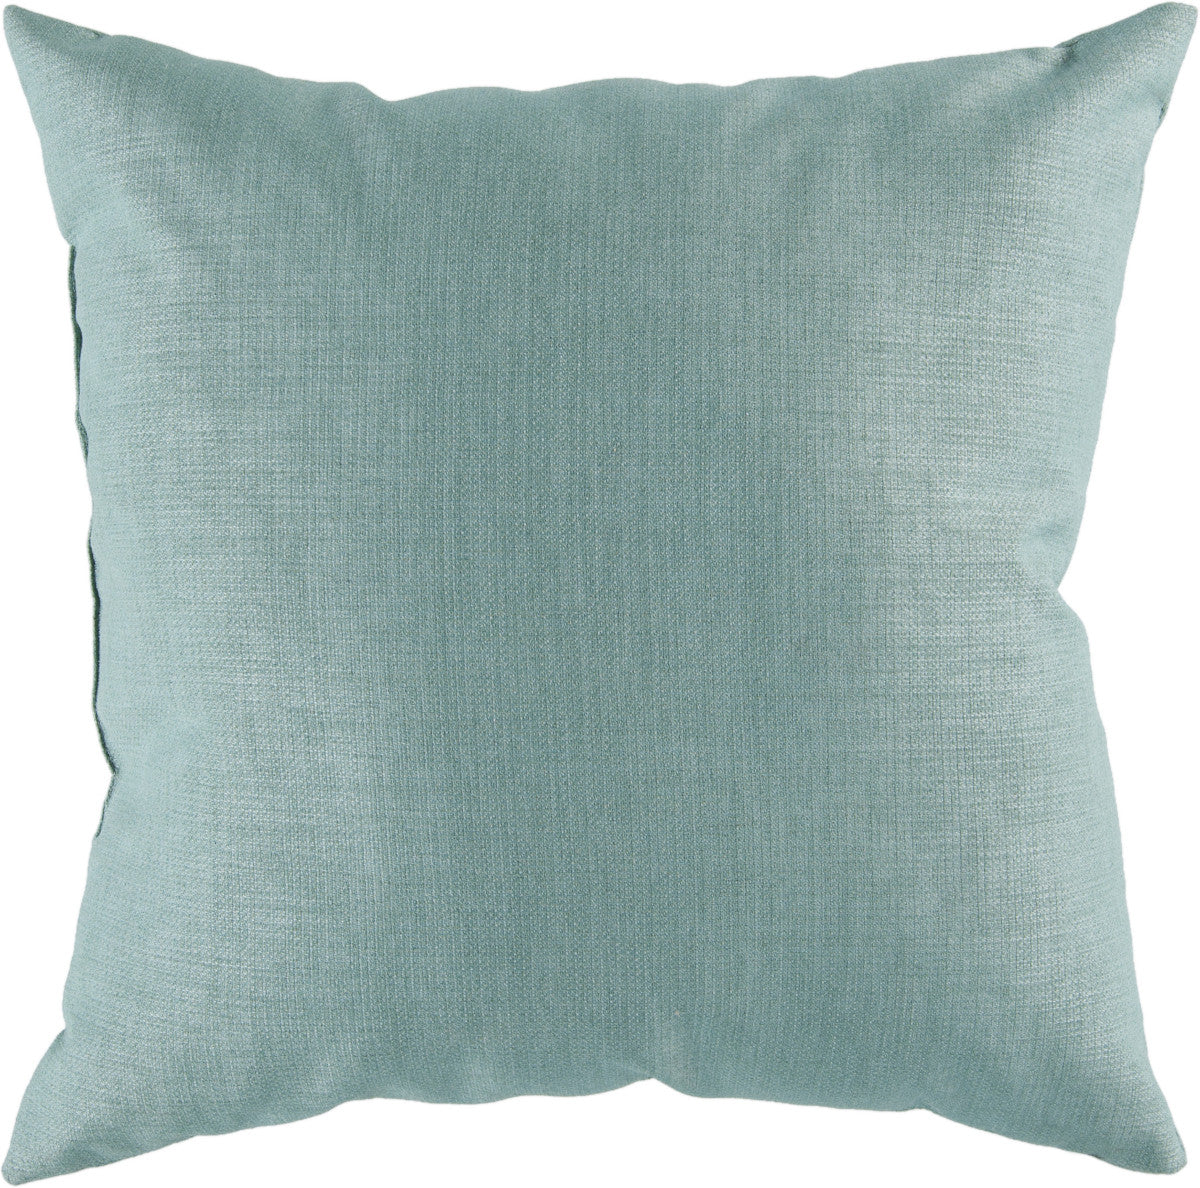 Surya Storm Stunning Solid Cover ZZ-404 Pillow